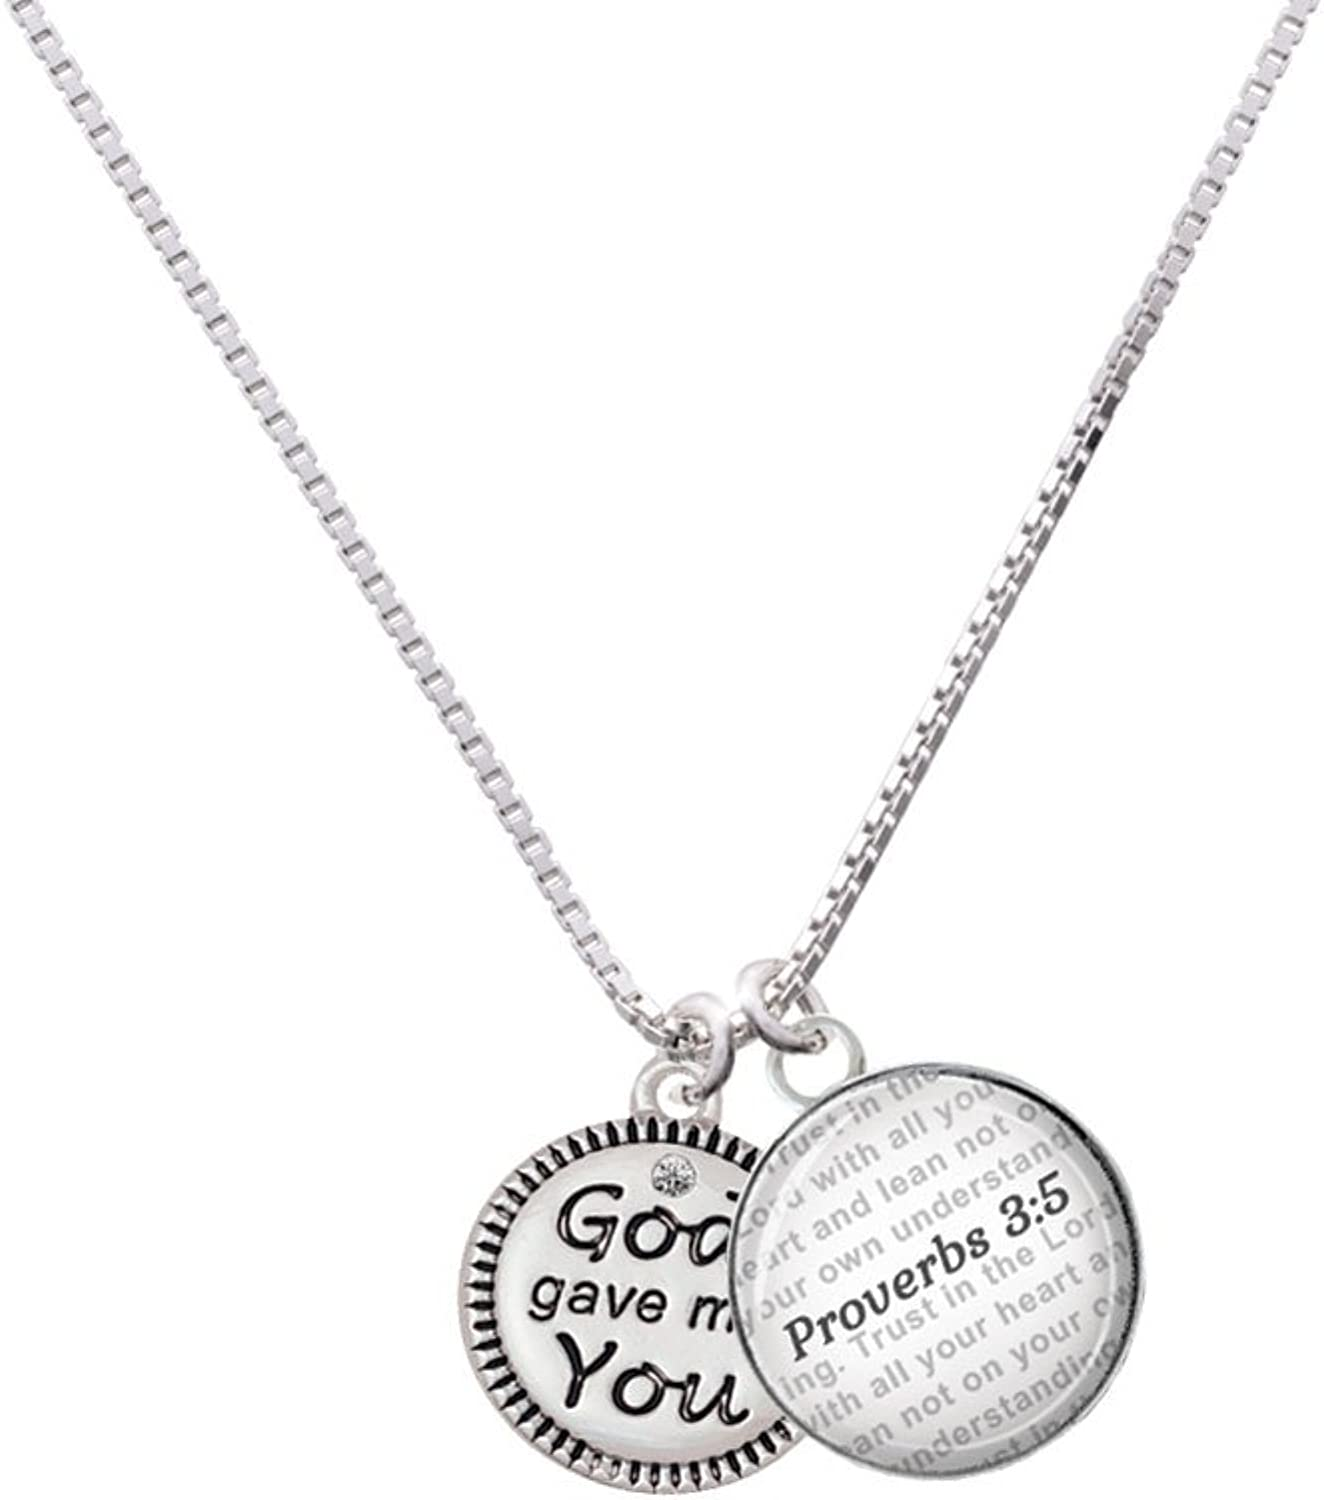 Delight Silgreenone God Gave Me You - Bible Verse Proverbs 3 5 Glass Dome Necklace, 18 +2